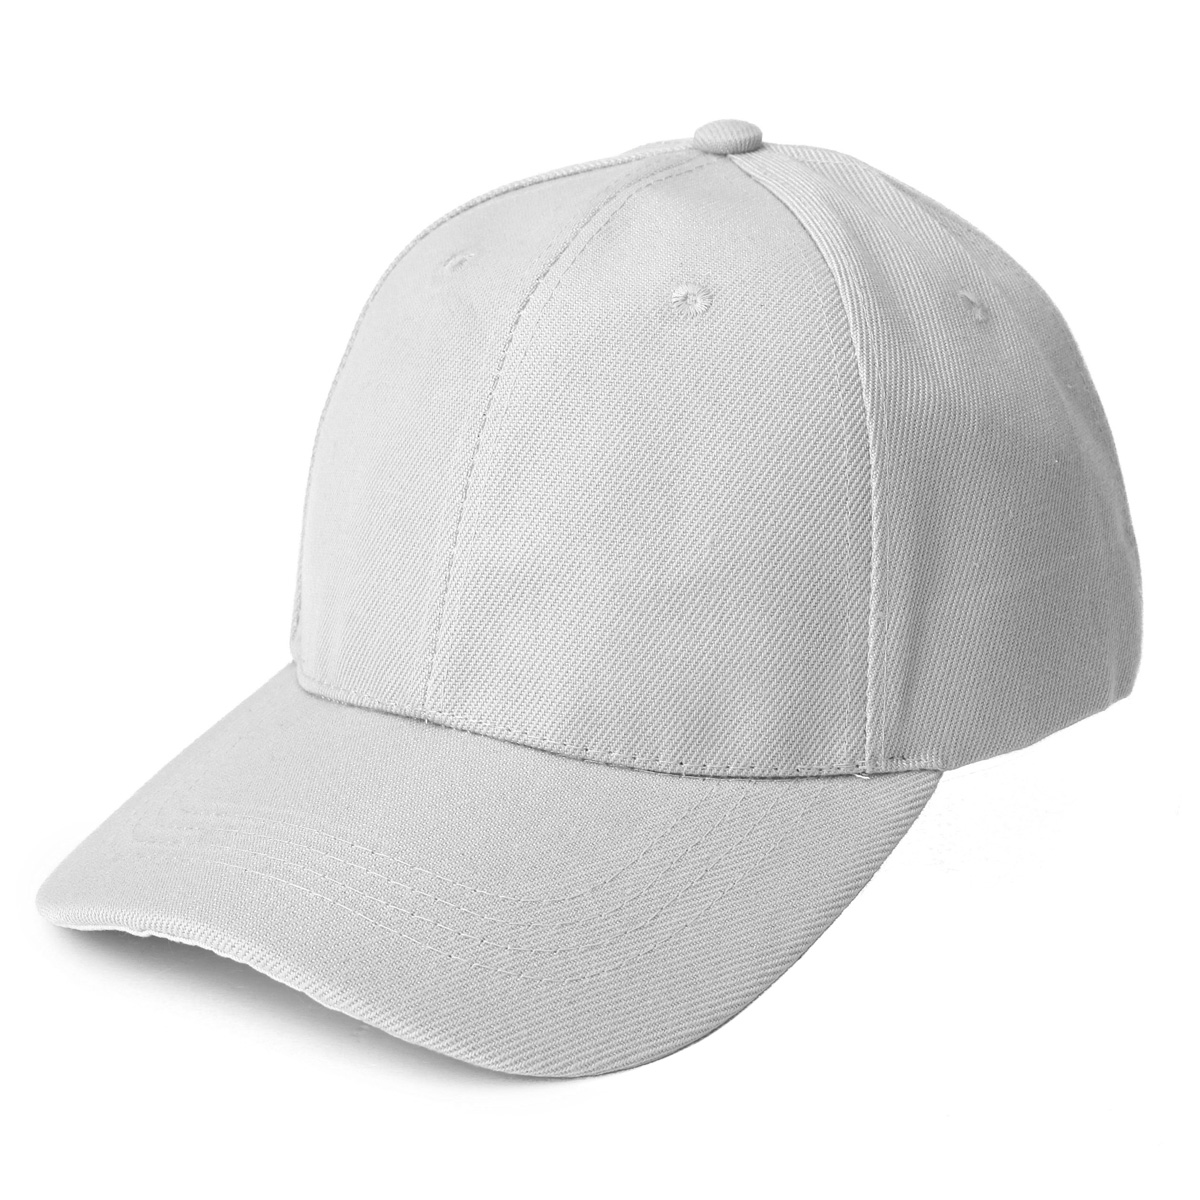 Plain Baseball Cap Solid Color Blank Curved Visor Peaked ...